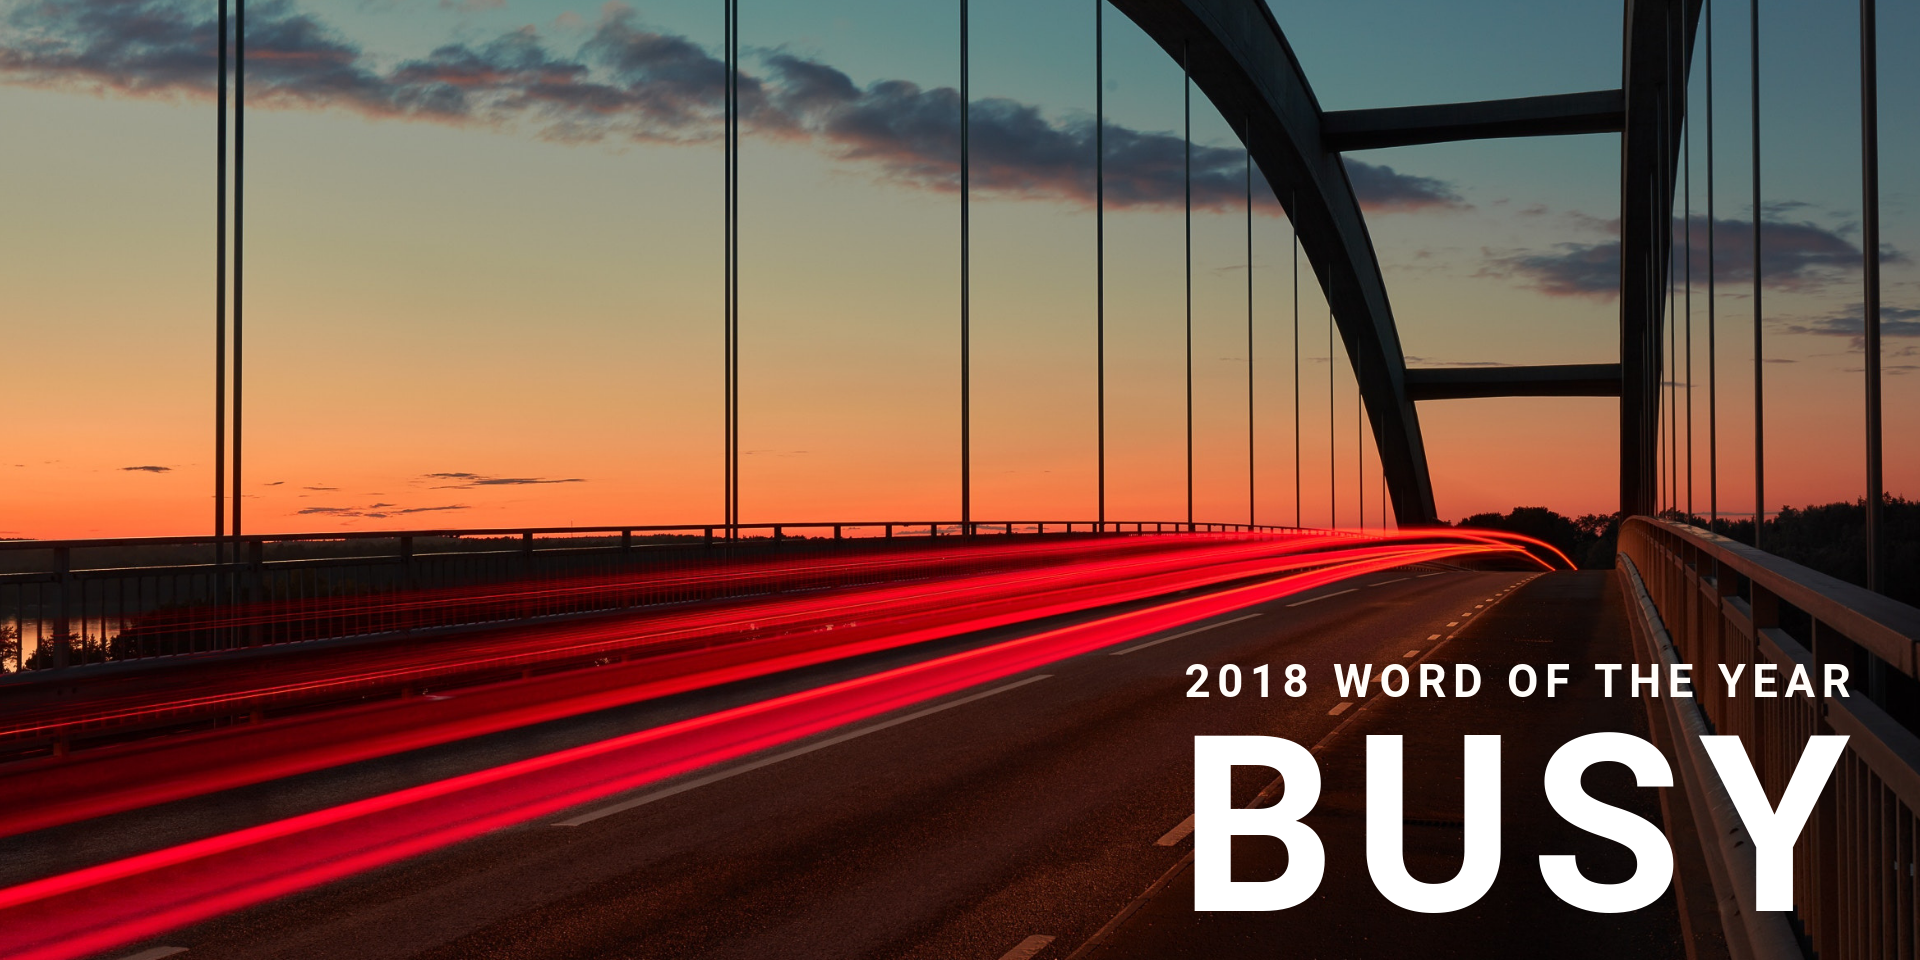 2018 Word of the Year: Busy